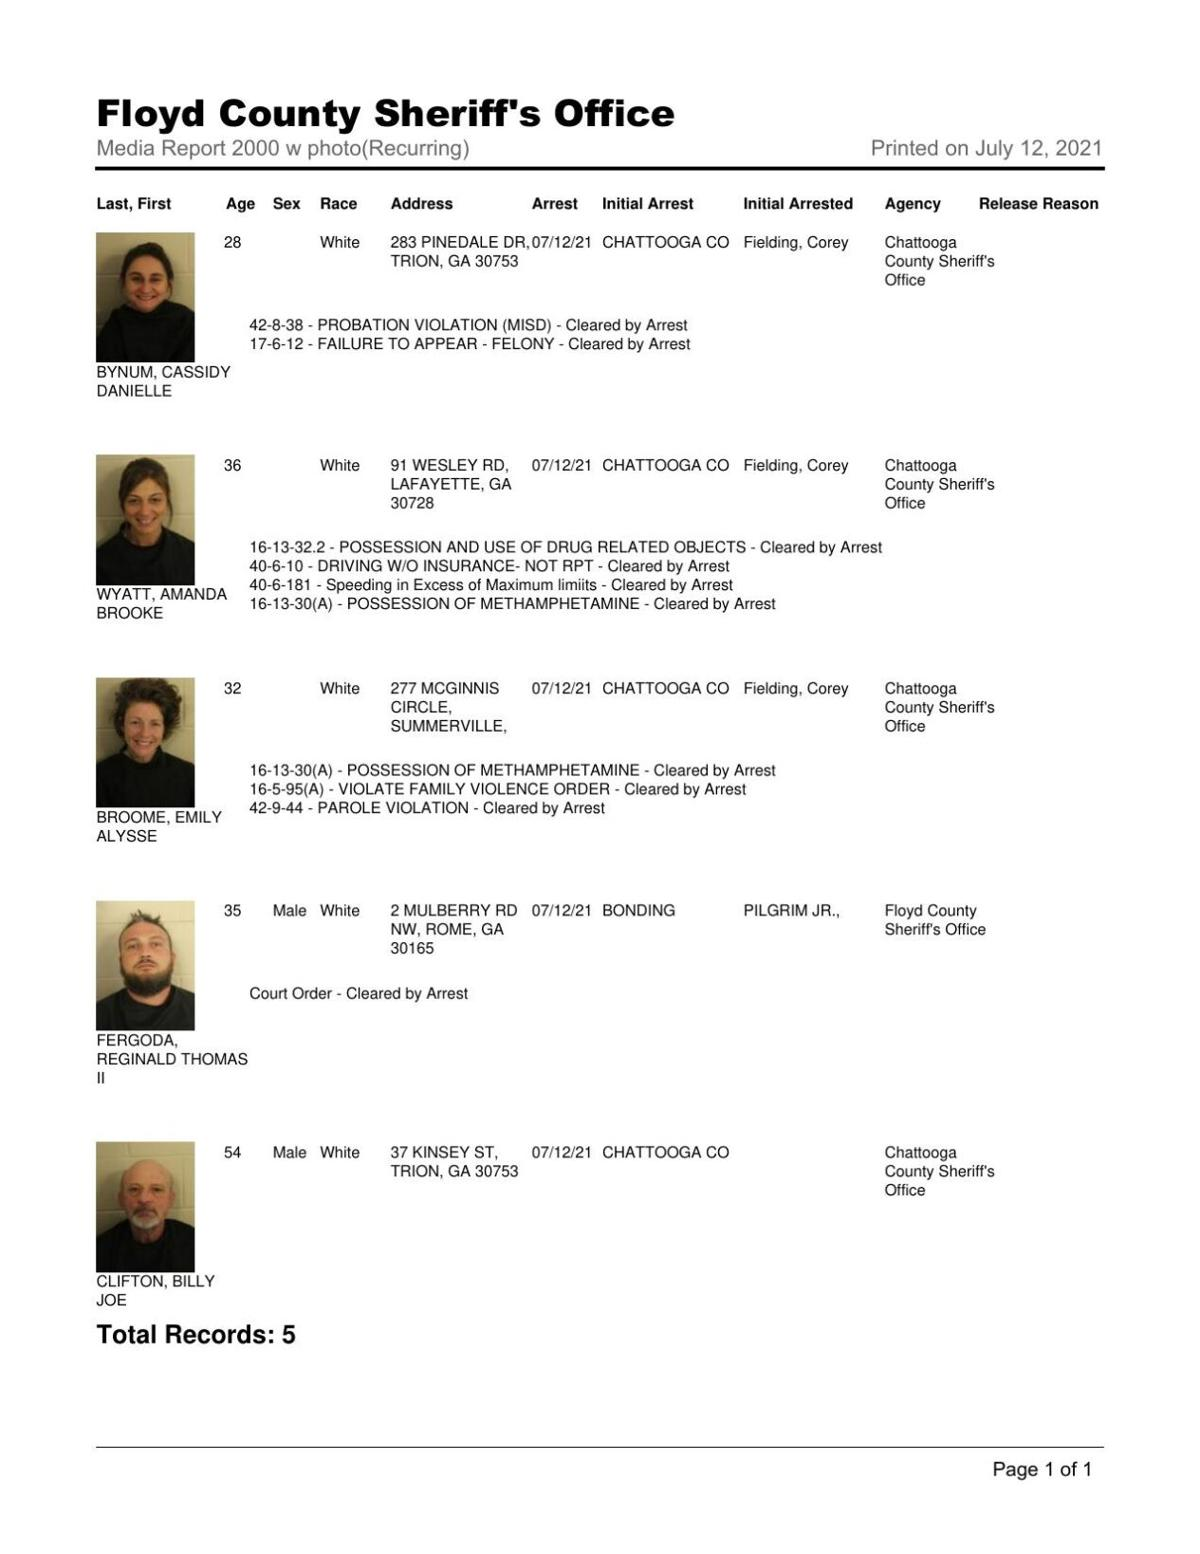 Floyd County Jail report for 8 pm Monday, July 12